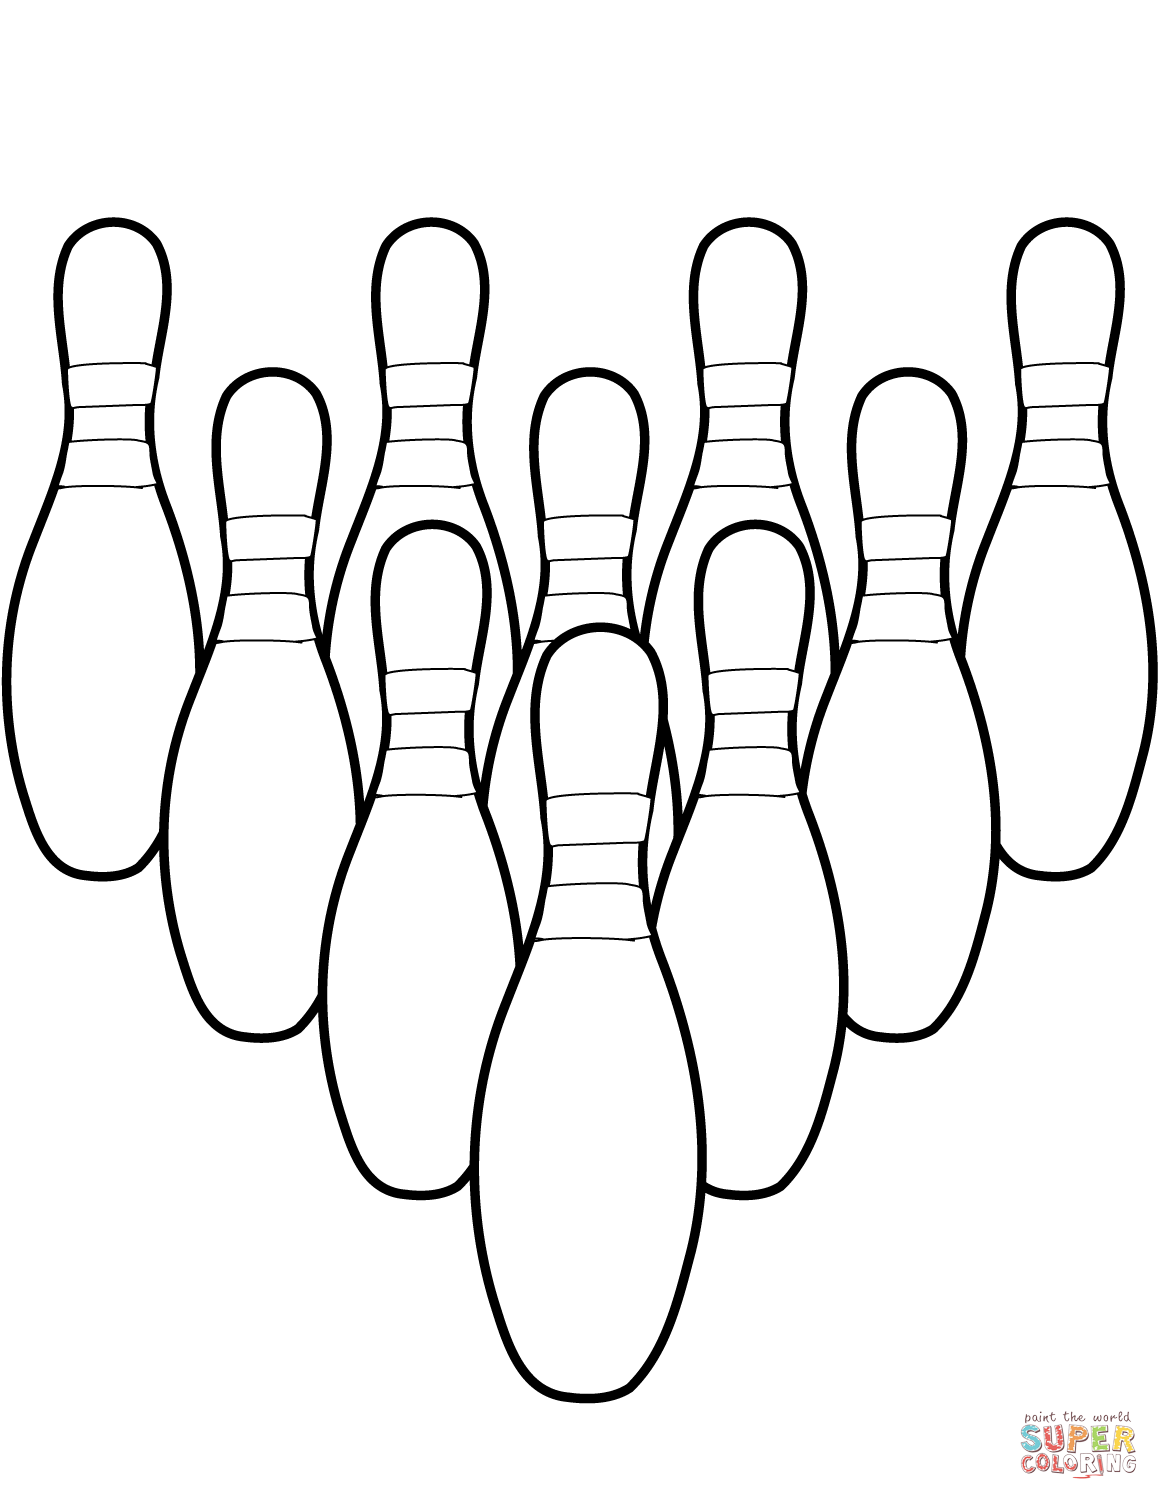 Bowling Pin Coloring Page Clipartsco Sketch Coloring Page